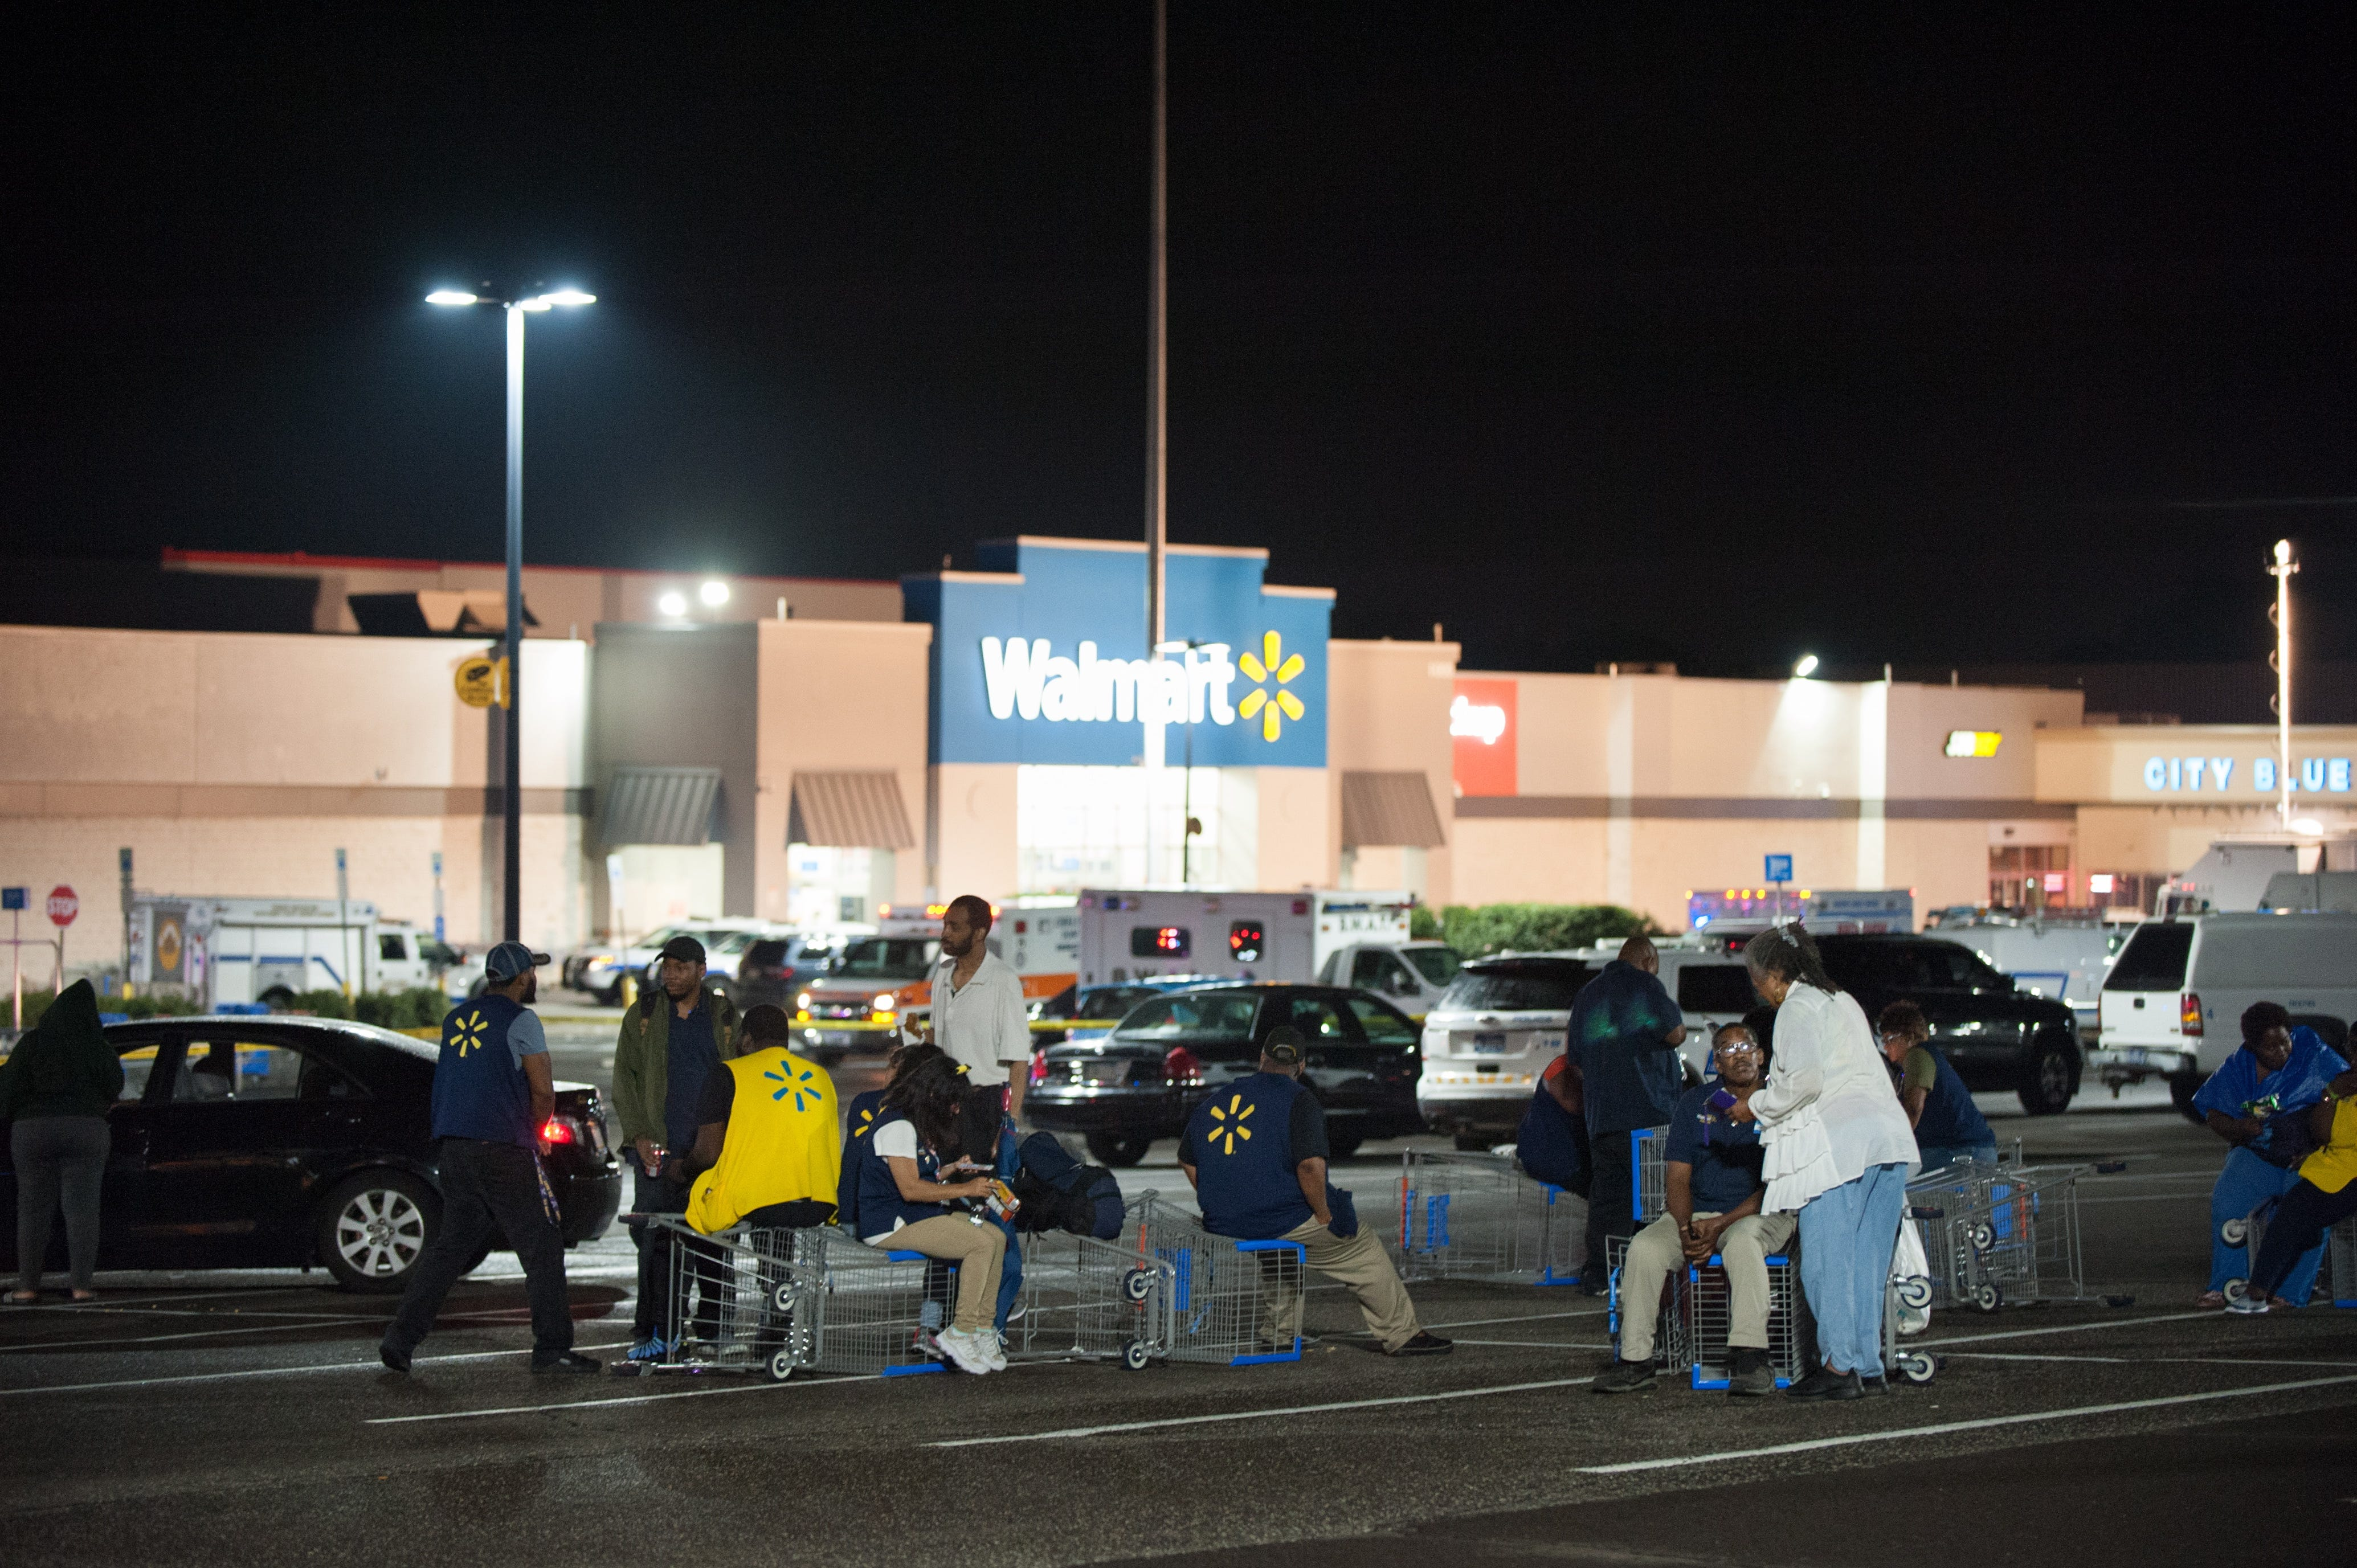 Eight injured at Walmart in Pennsylvania after shooting in checkout lines | Burlington Free Press